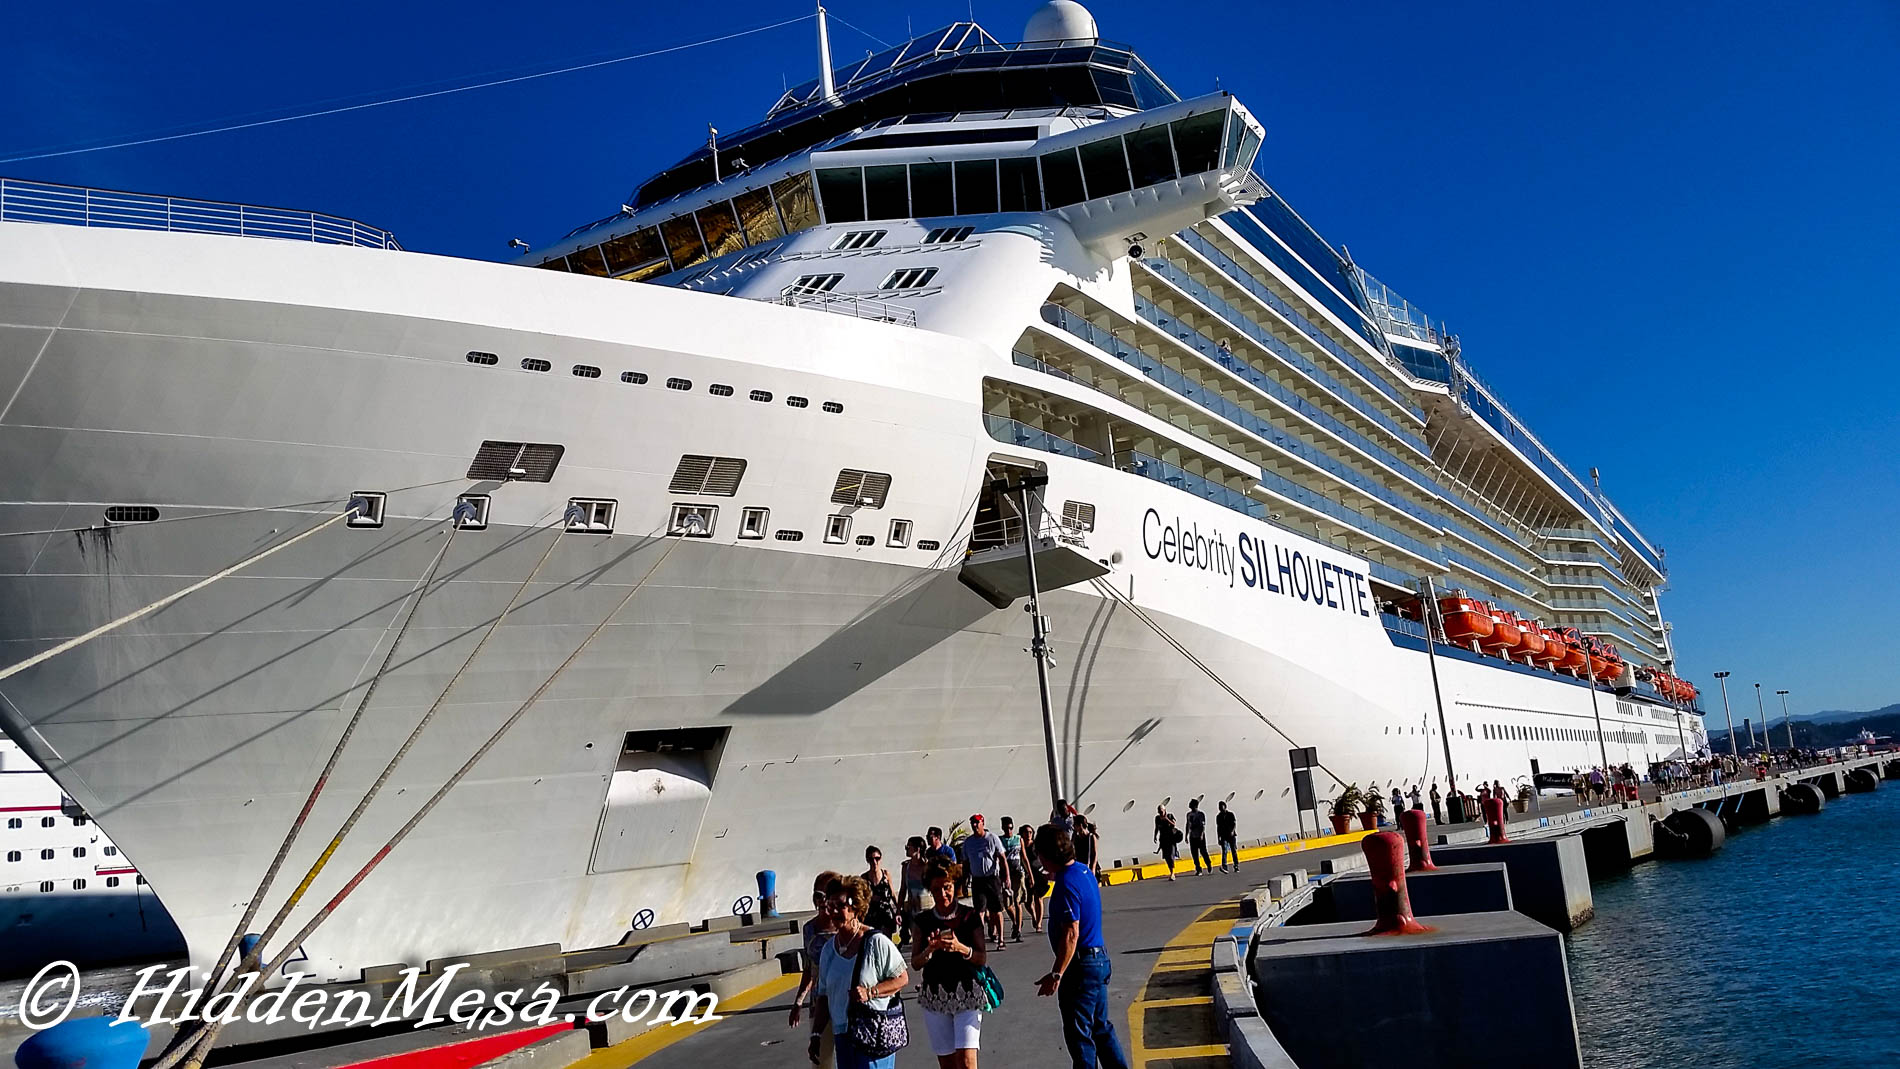 First Impressions of the Celebrity Silhouette